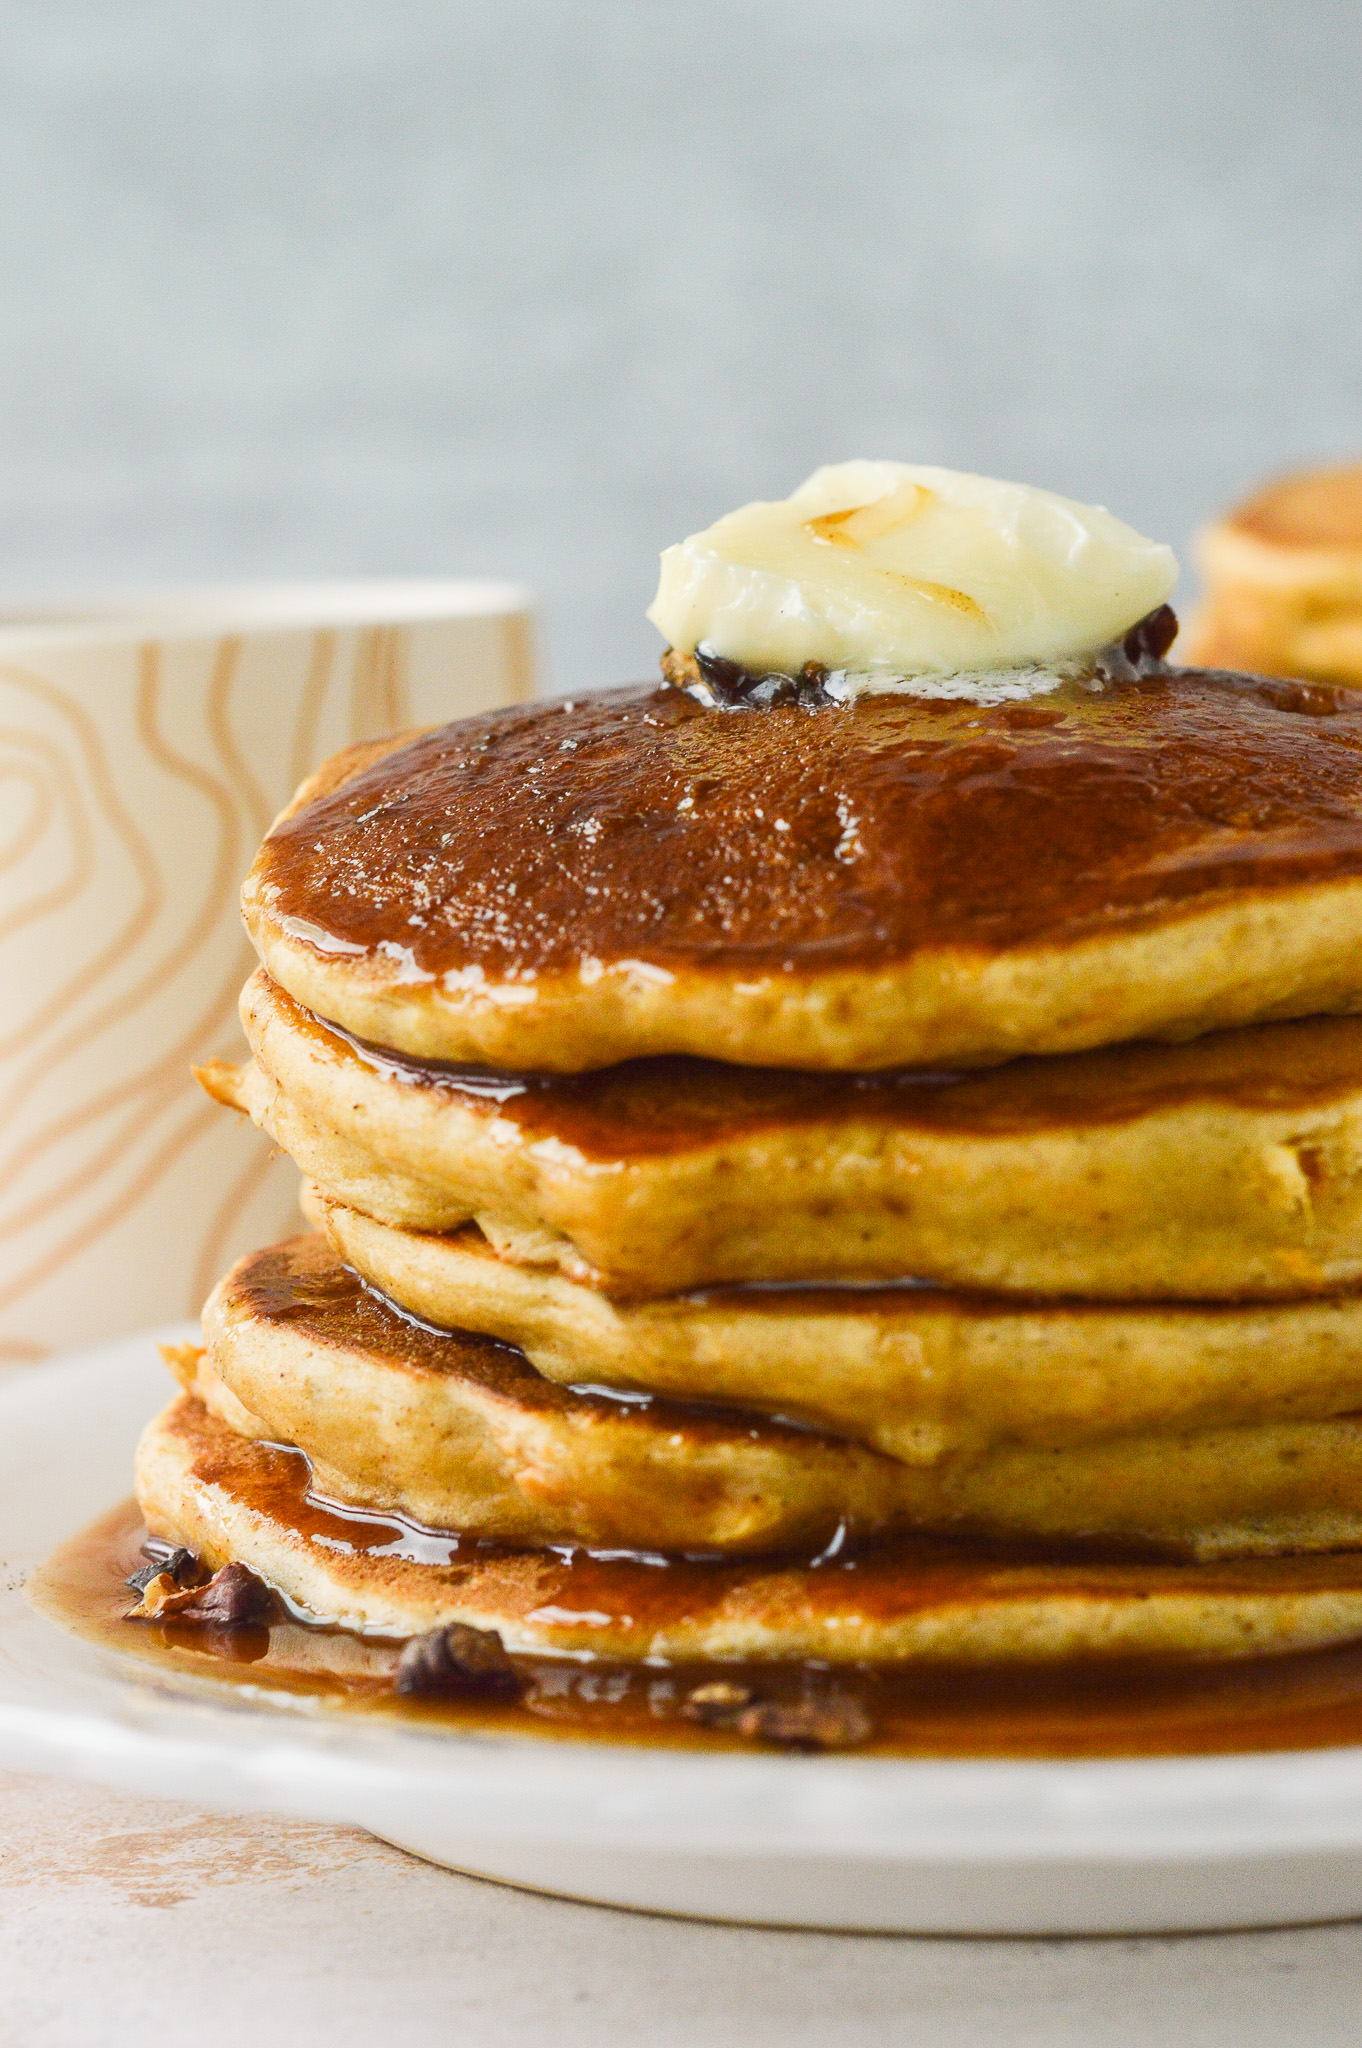 A stack of golden sweet potato pancakes topped with cinnamon syrup, a pat of butter, and toasted walnuts.